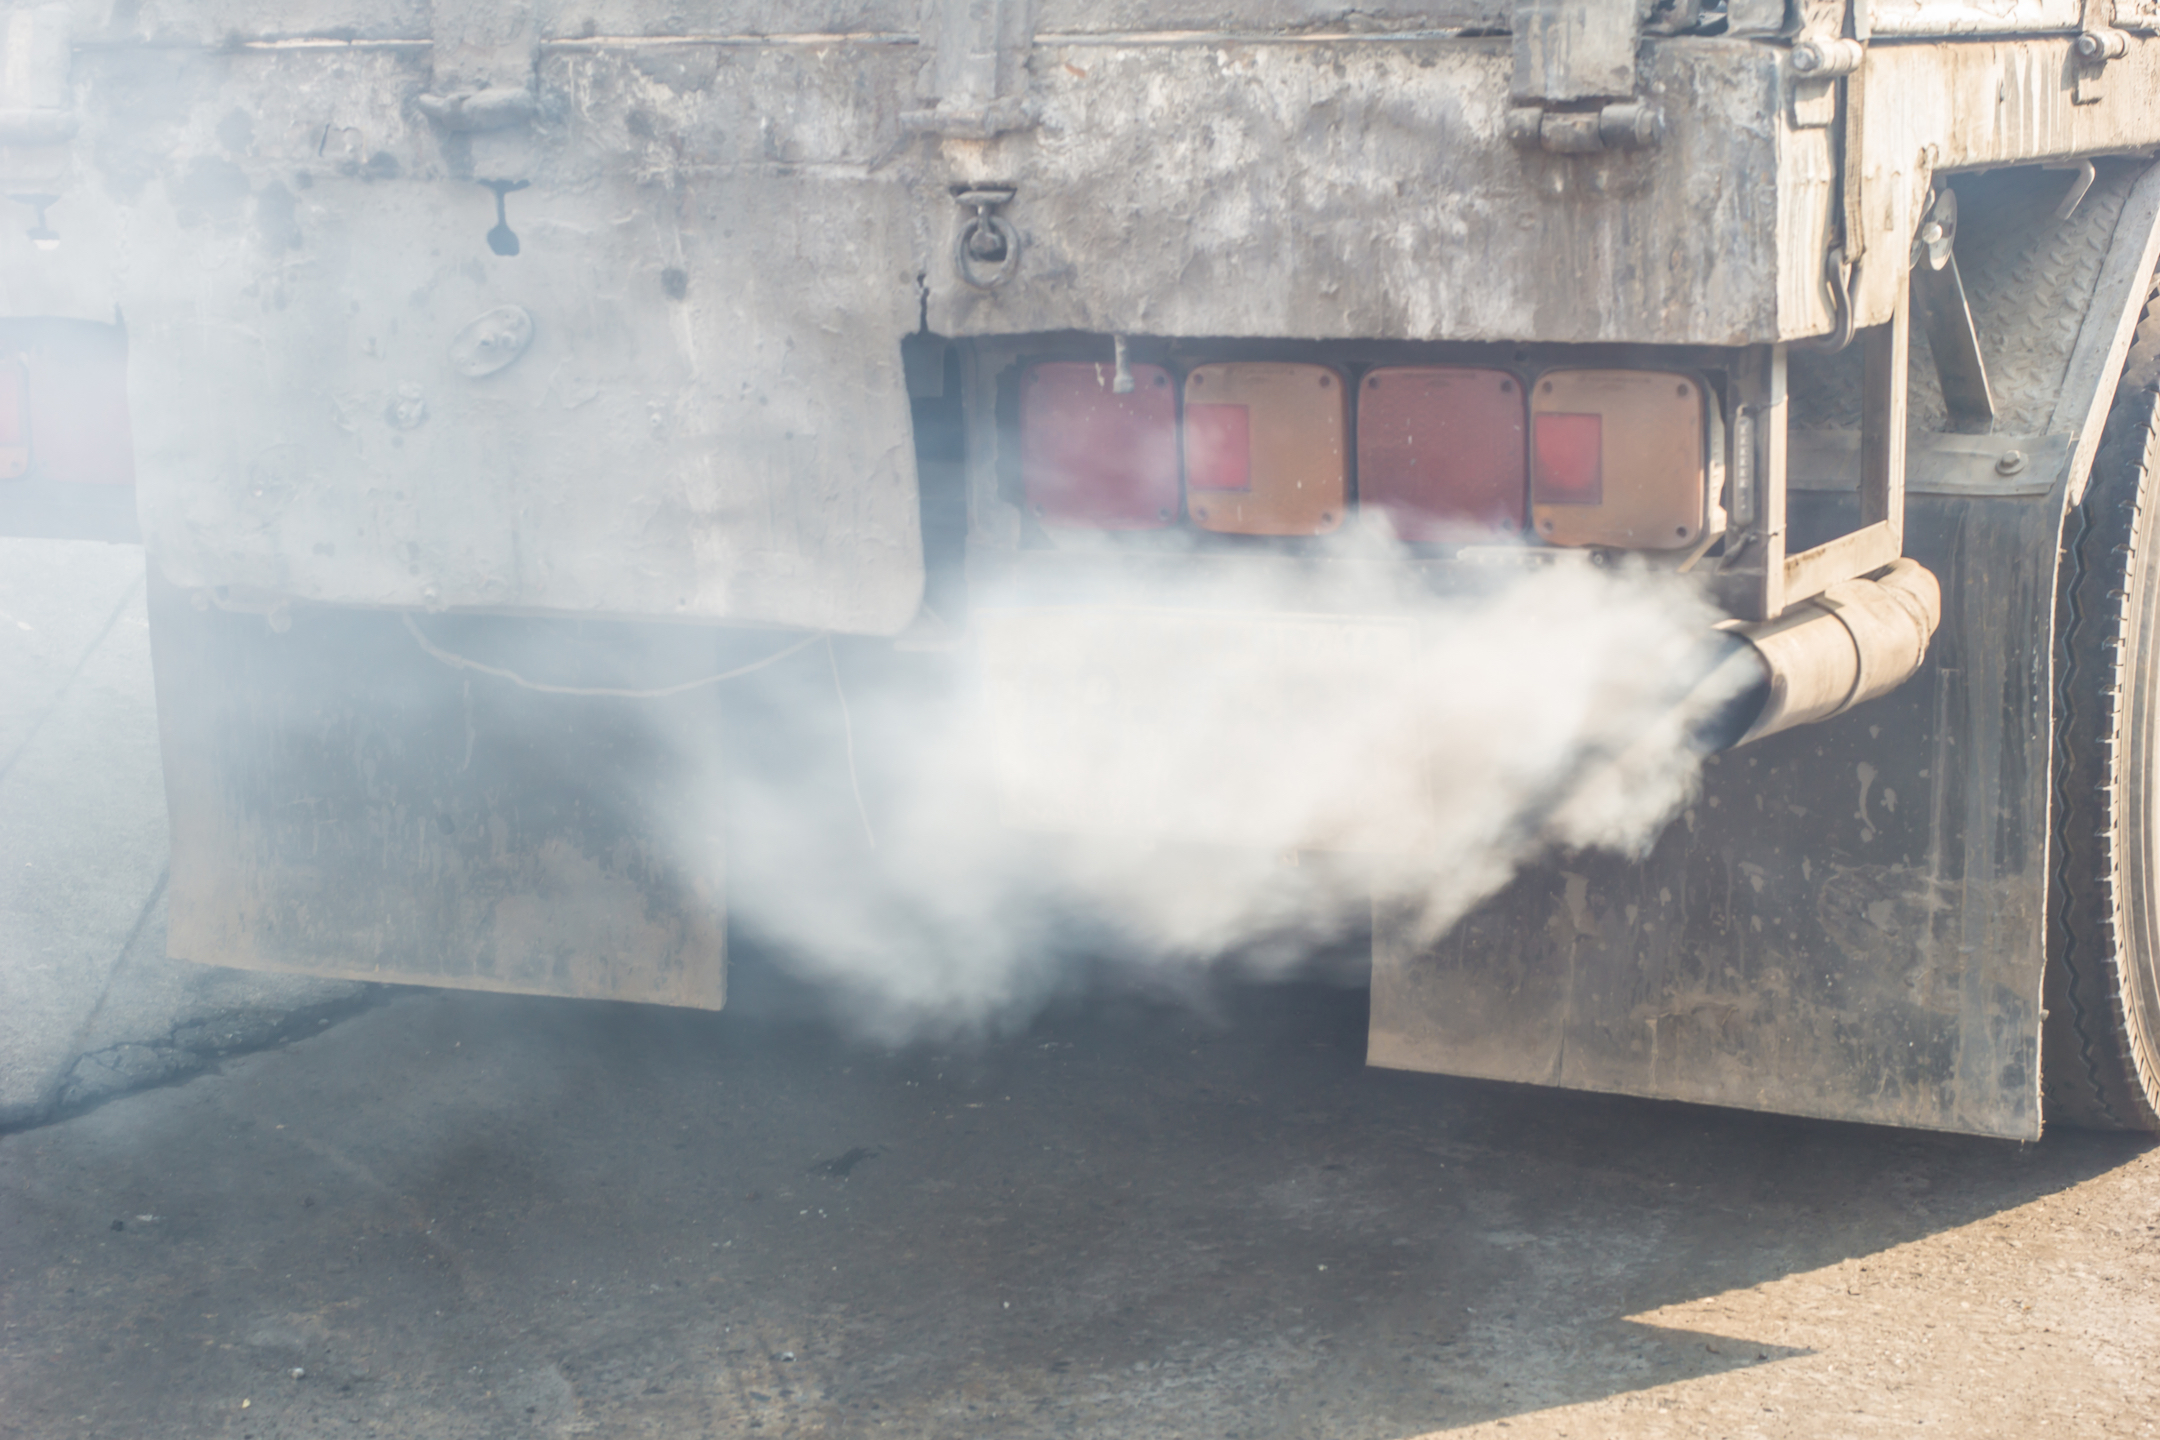 A breakthrough will make buses and service trucks more environmentally friendly by reducing their emissions while idling.